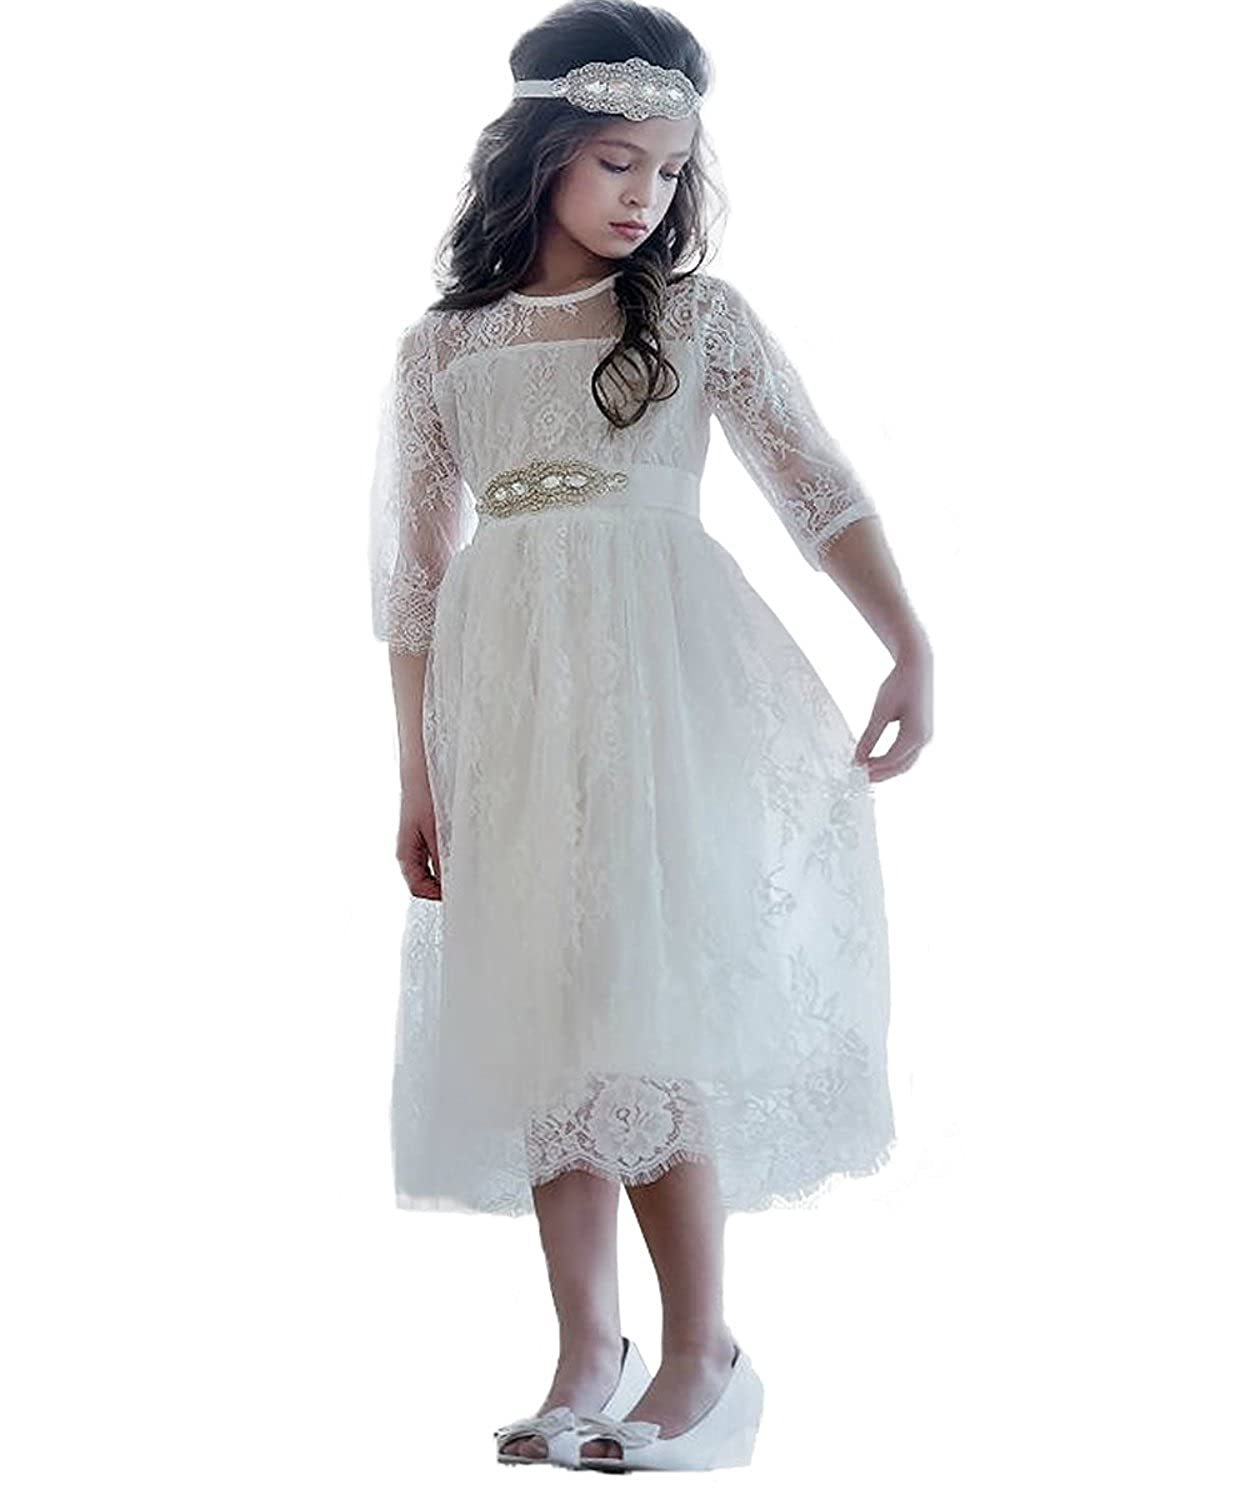 299148c9ab3 ... Line Tea Length First Communion Gown Flower Girl Dresses with Belt.  Wholesale Price 49.99 -  58.99 1.Material Lace. Sizes 12